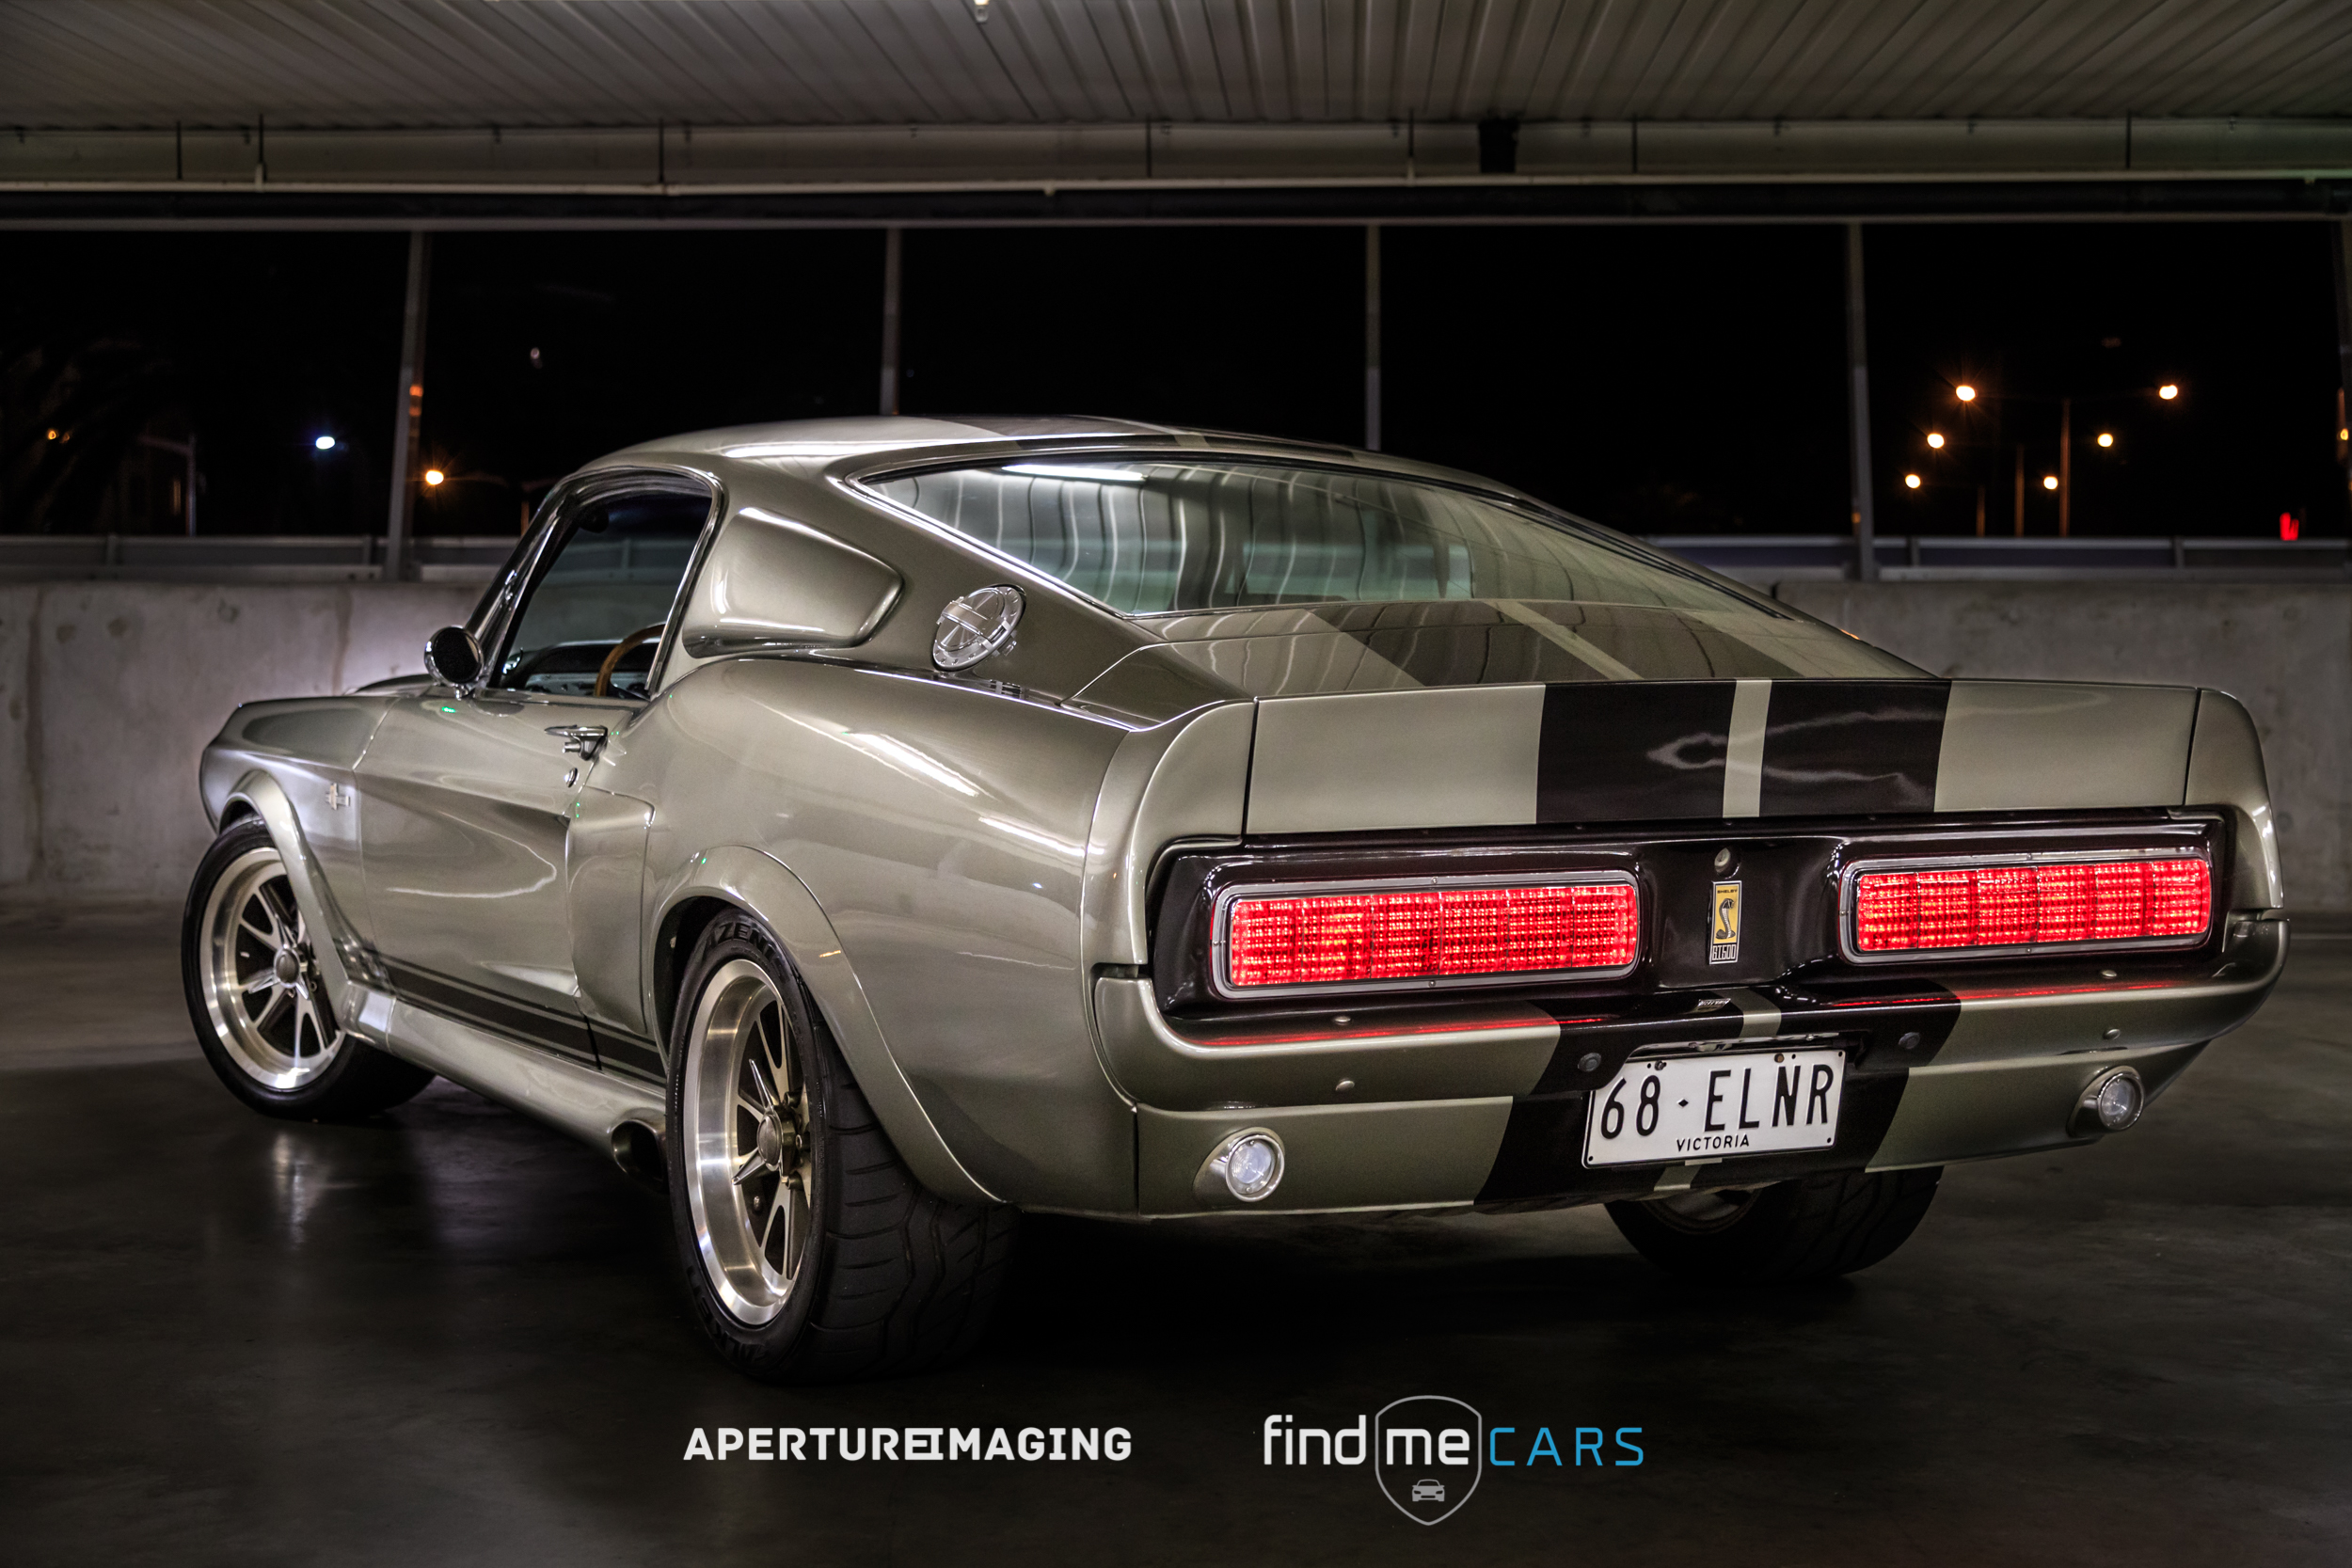 1968 Ford Mustang Fastback Movie Correct Eleanor Find Me Cars